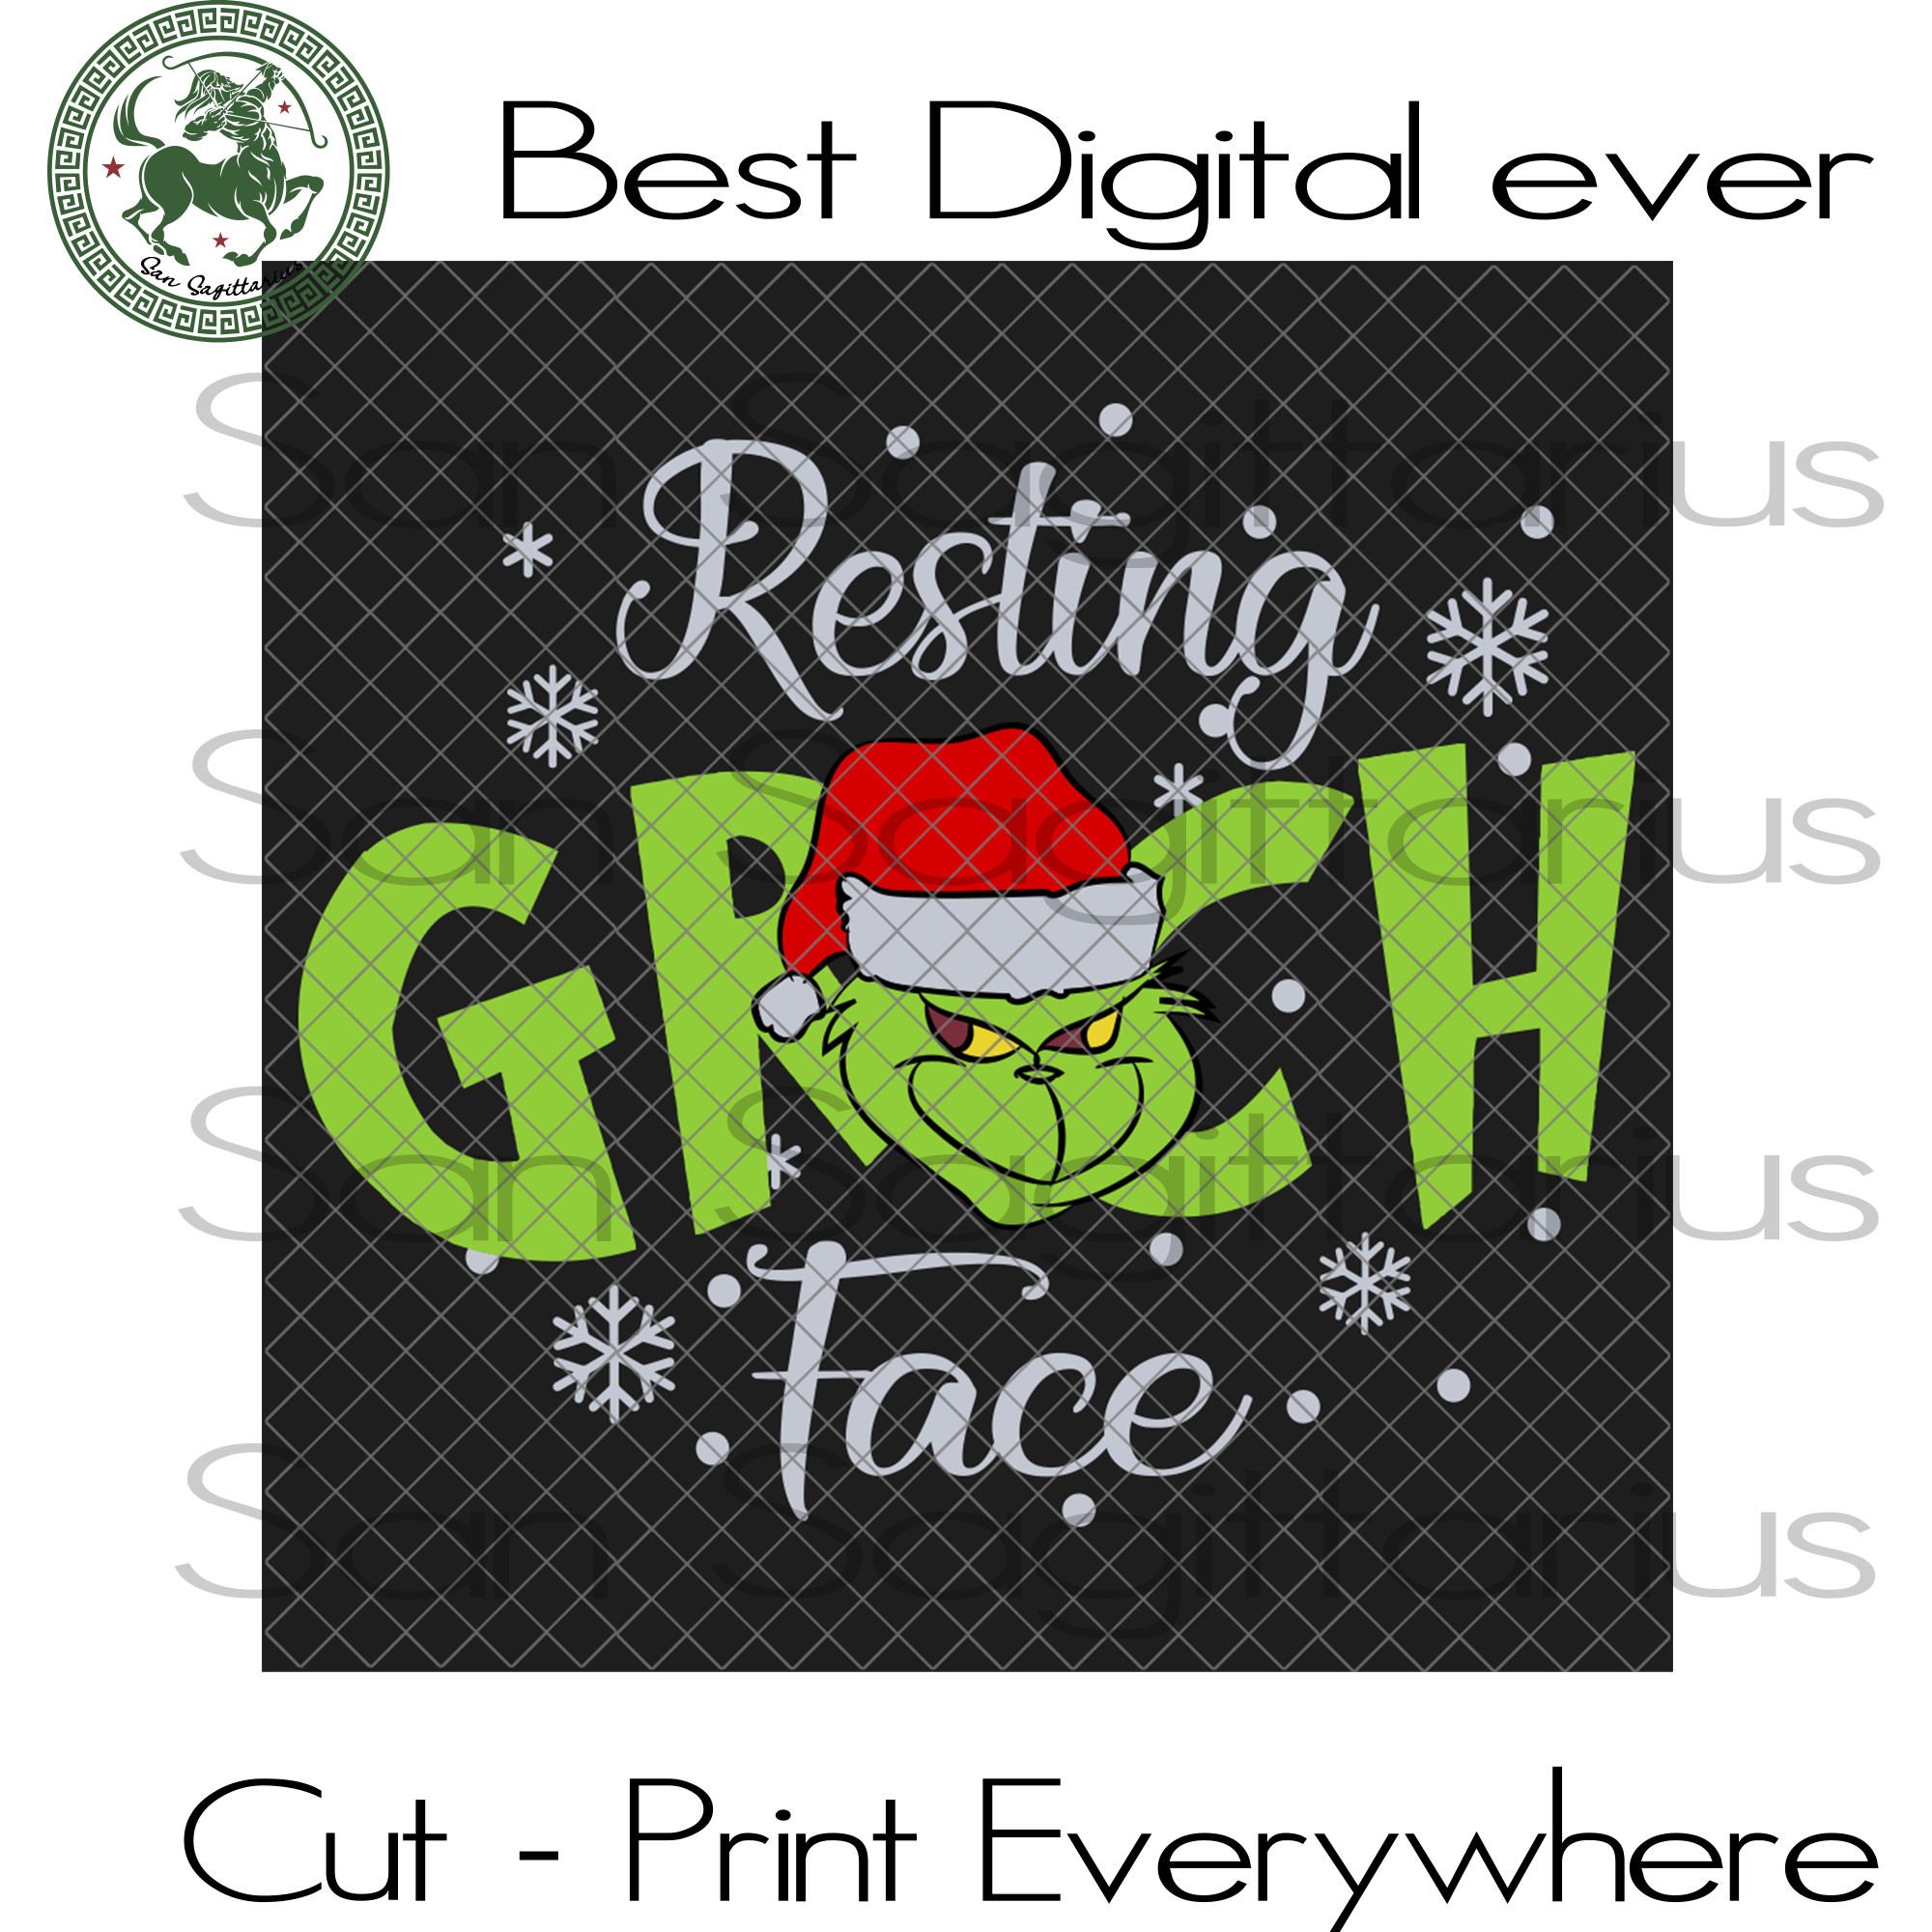 Resting Grinch Face Grinch,The Grinch Lover, hristmas Svg, Disney Christmas, Merry Christmas, Xmas Gift, The Grinch Svg, Grinch Svg, The Grinch, Grinch Cut File, Grinch Christmas, Grinch Love